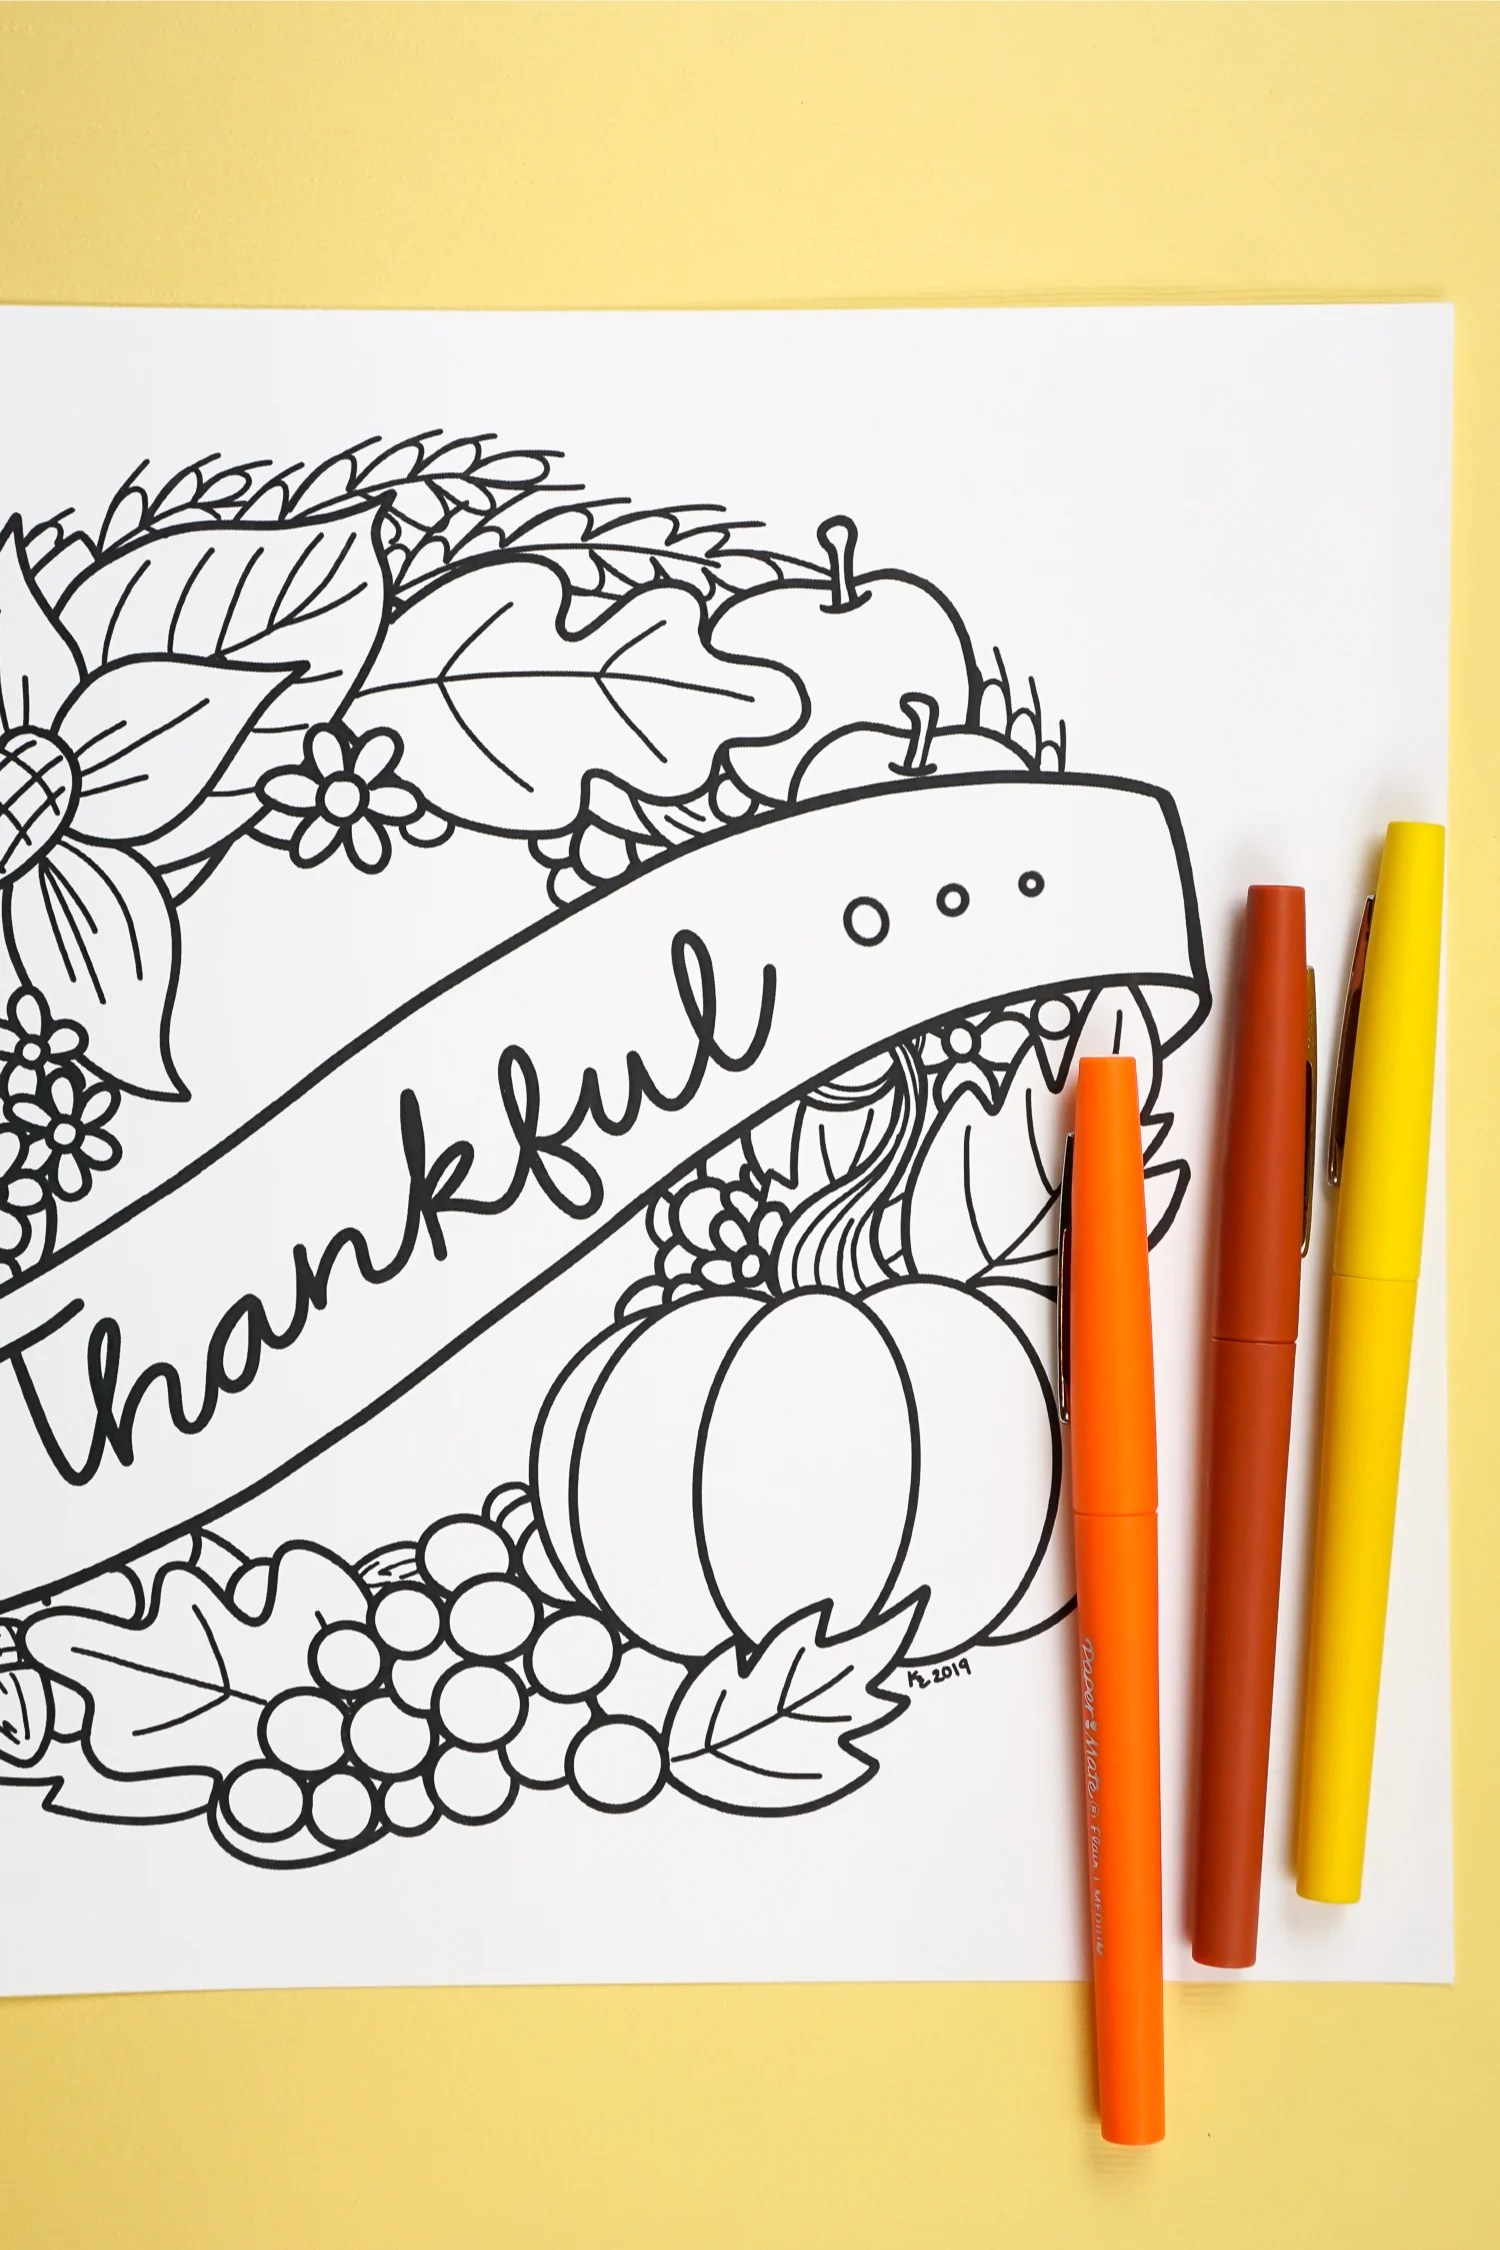 Gobble Gobble! It's turkey season and the food isn't the only fun. Bring Free Printable Thanksgiving Coloring Page to life while you wait for the turkey to finish cooking.